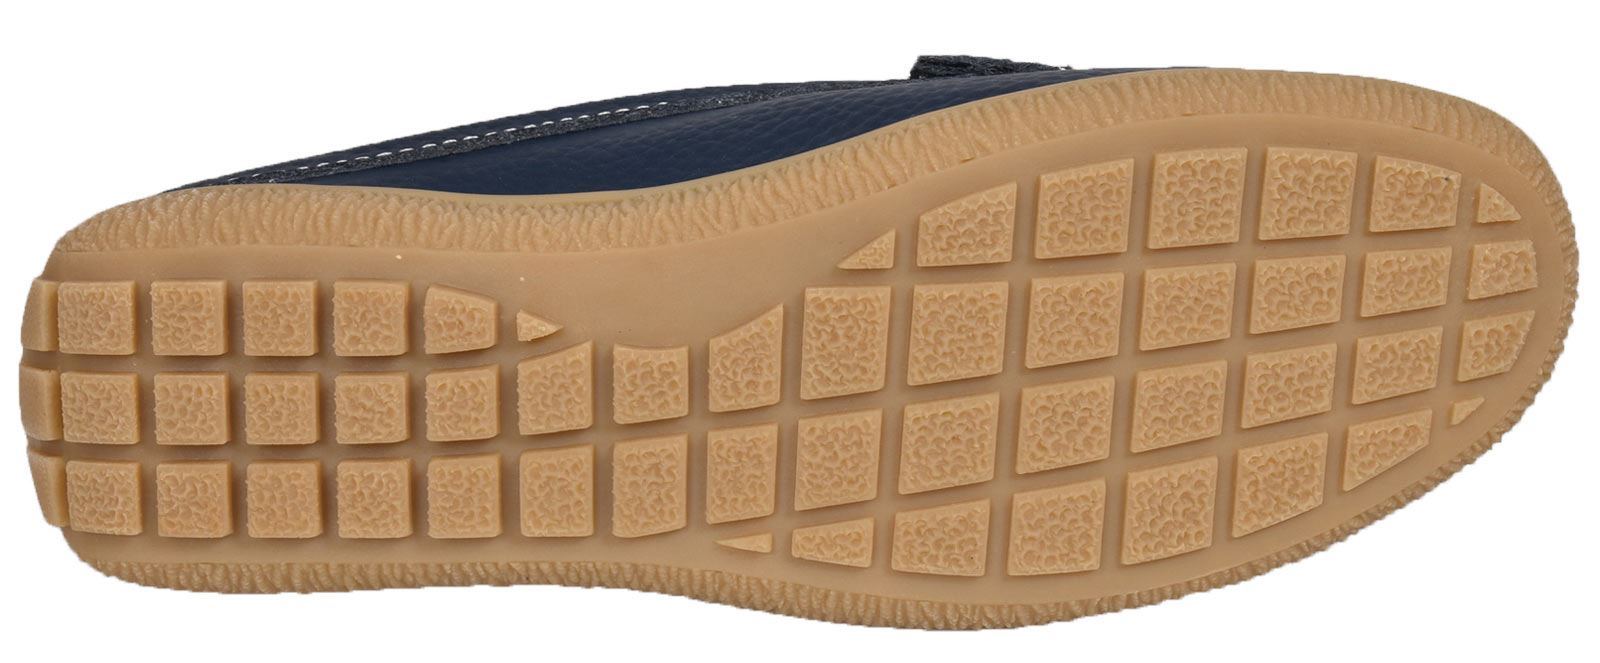 Ladies-Leather-Loafer-Mules-Comfort-Shoes-Womens-Slider-Moccasins-Shoes thumbnail 30